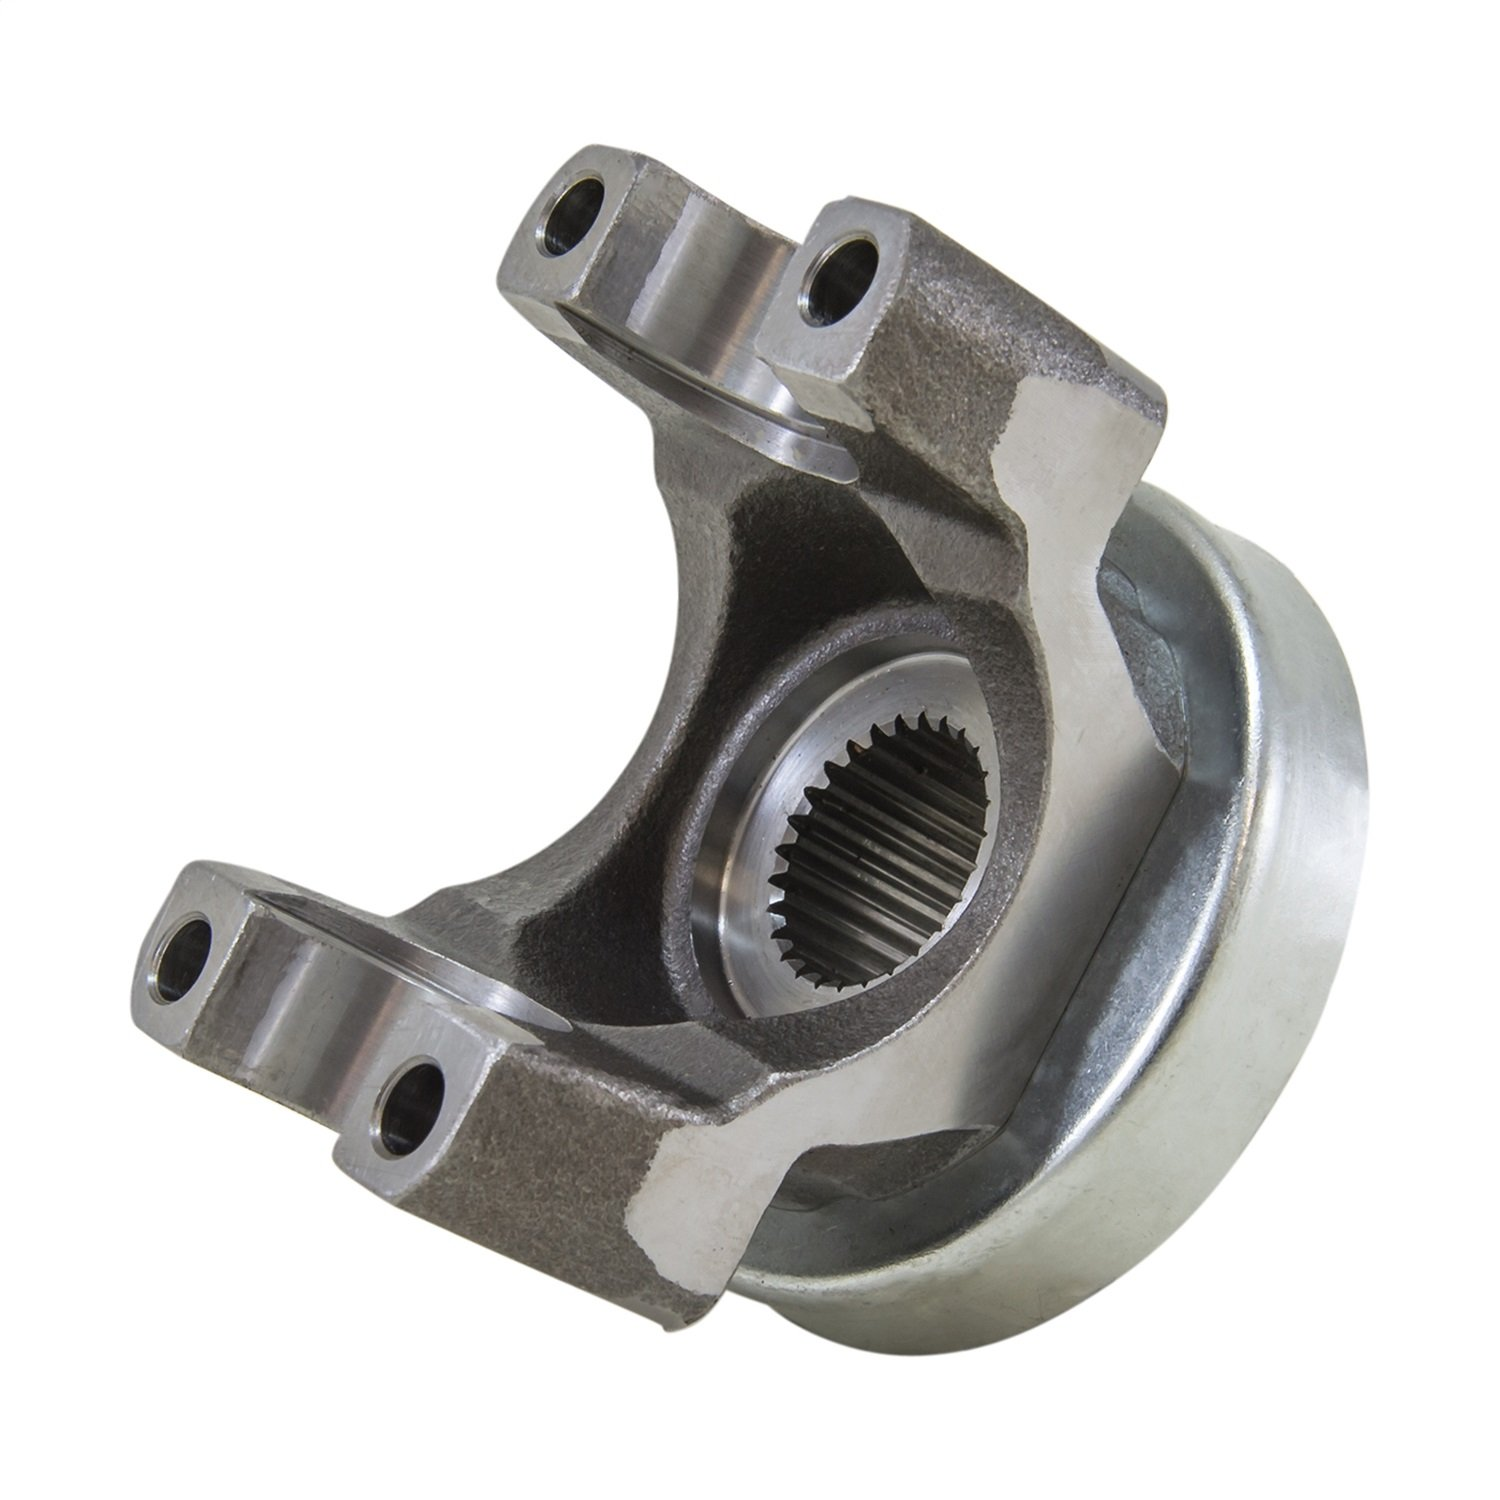 Yukon Gear & Axle (YY GM7827670) Yoke for GM 7.5 & GM 7.625 Differential (mech 3R) in a triple lip design, 27 Spline